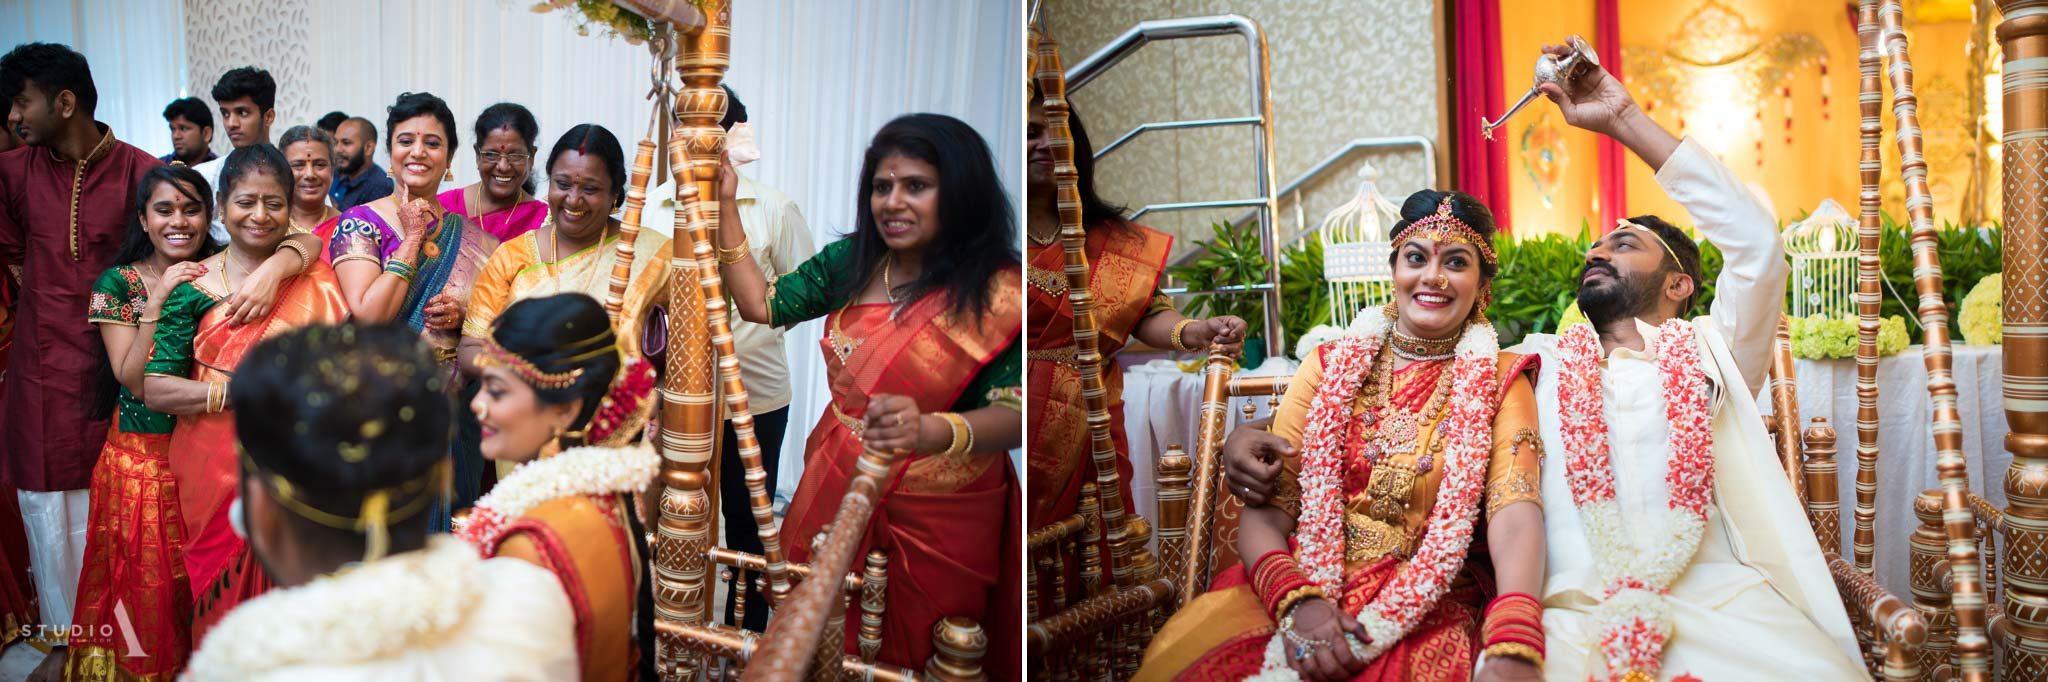 candid-wedding-photographer-chennai-27